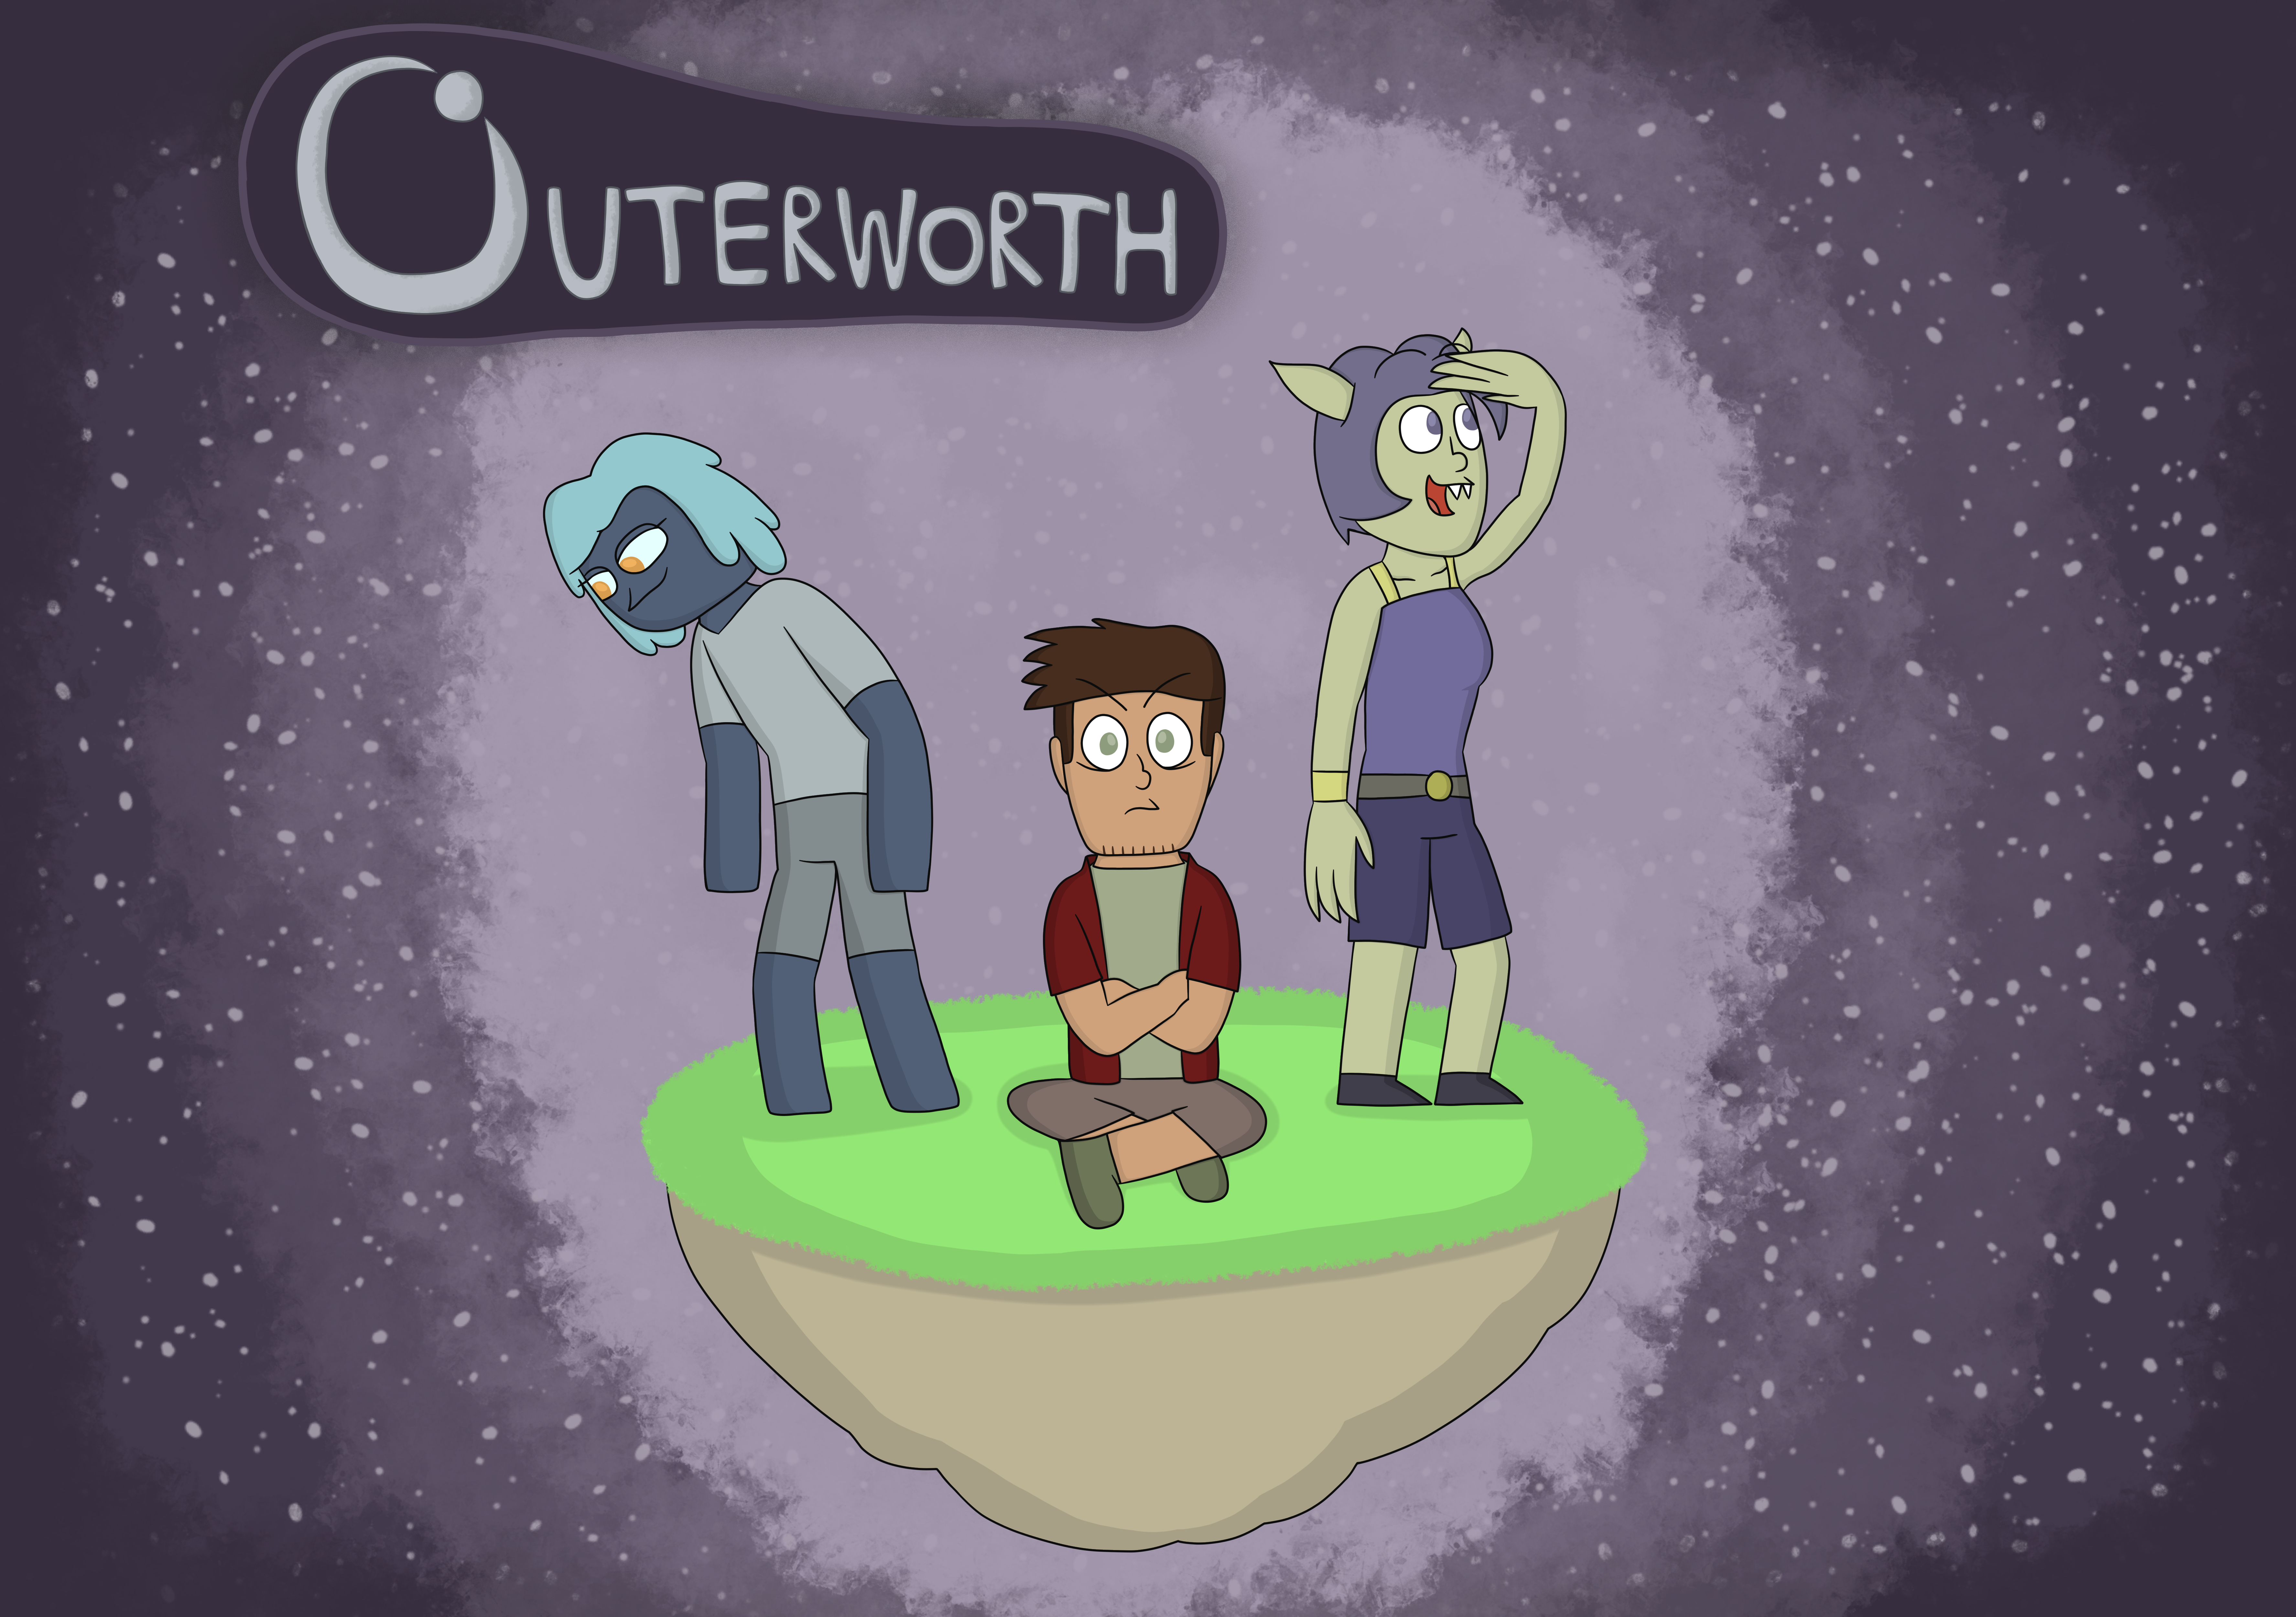 Outerworth